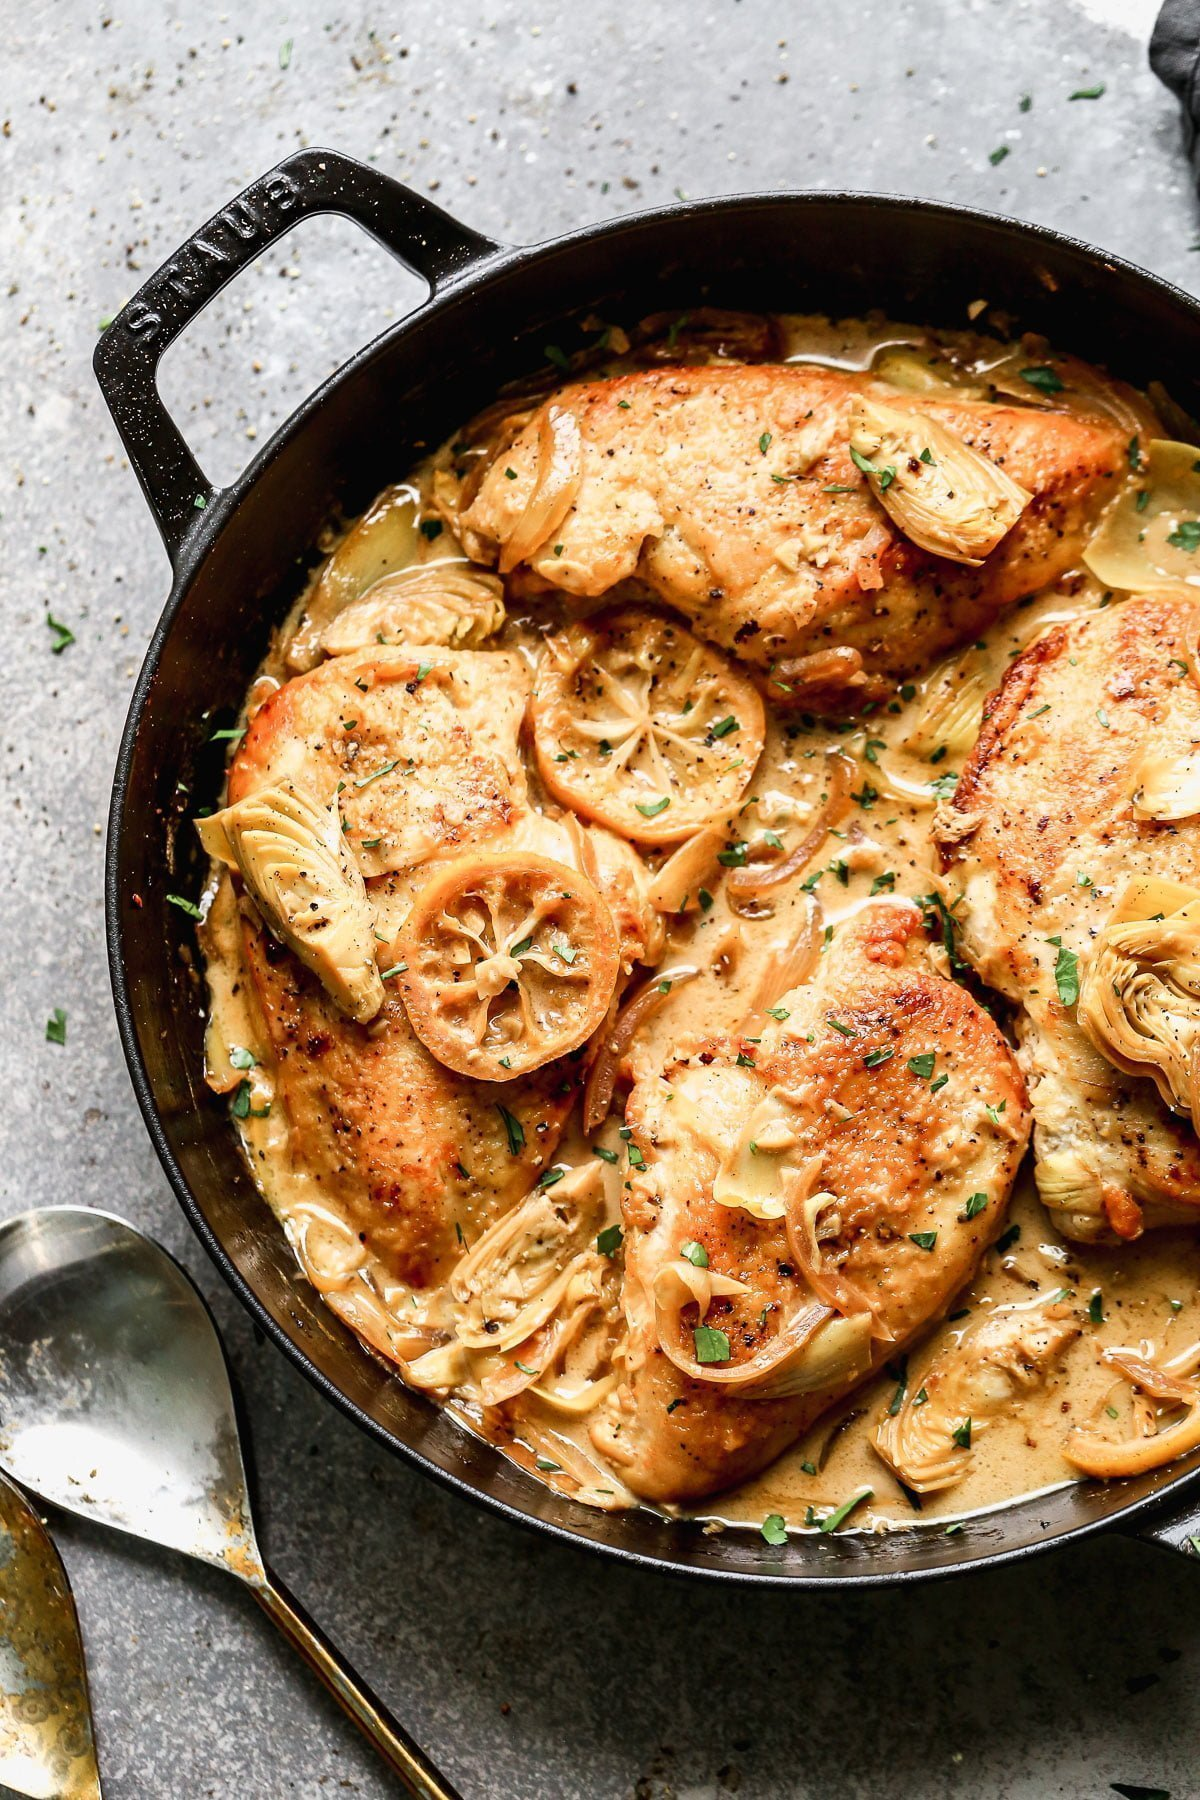 Swimming in a luscious lemon-infused wine sauce and studded with briny artichokes and sweet caramelized onions, our Chicken with Artichokes is the perfect bright springy dish to whip up when we also need a little cozy for those curve ball cold days we all get this time of year.